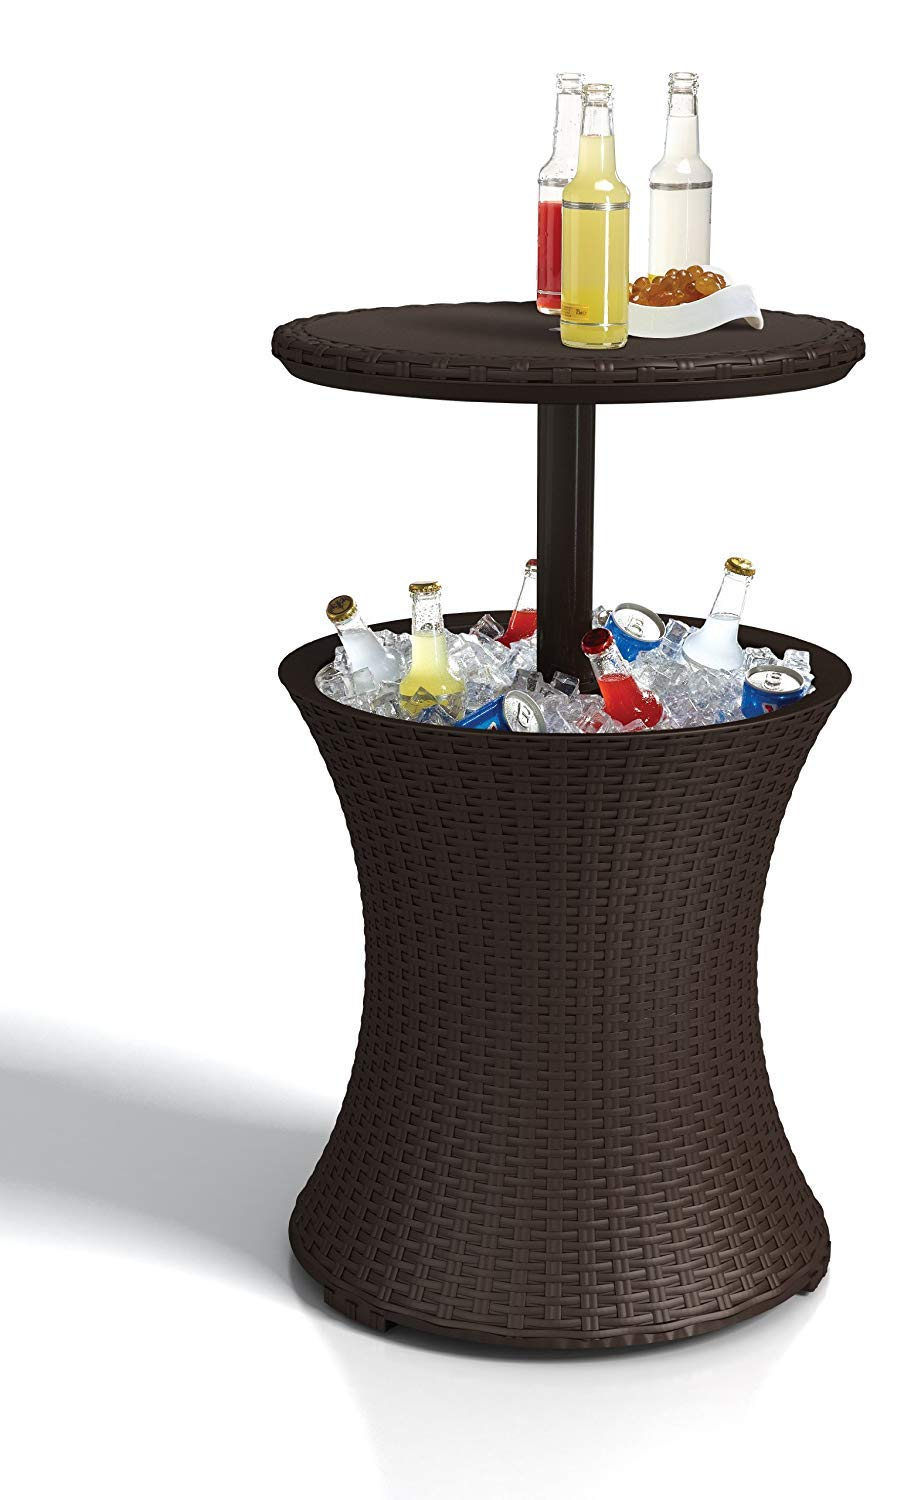 Outstanding Keter Pacific Rattan Style Outdoor Cool Bar Ice Cooler Table Garden Furniture Brown Inzonedesignstudio Interior Chair Design Inzonedesignstudiocom